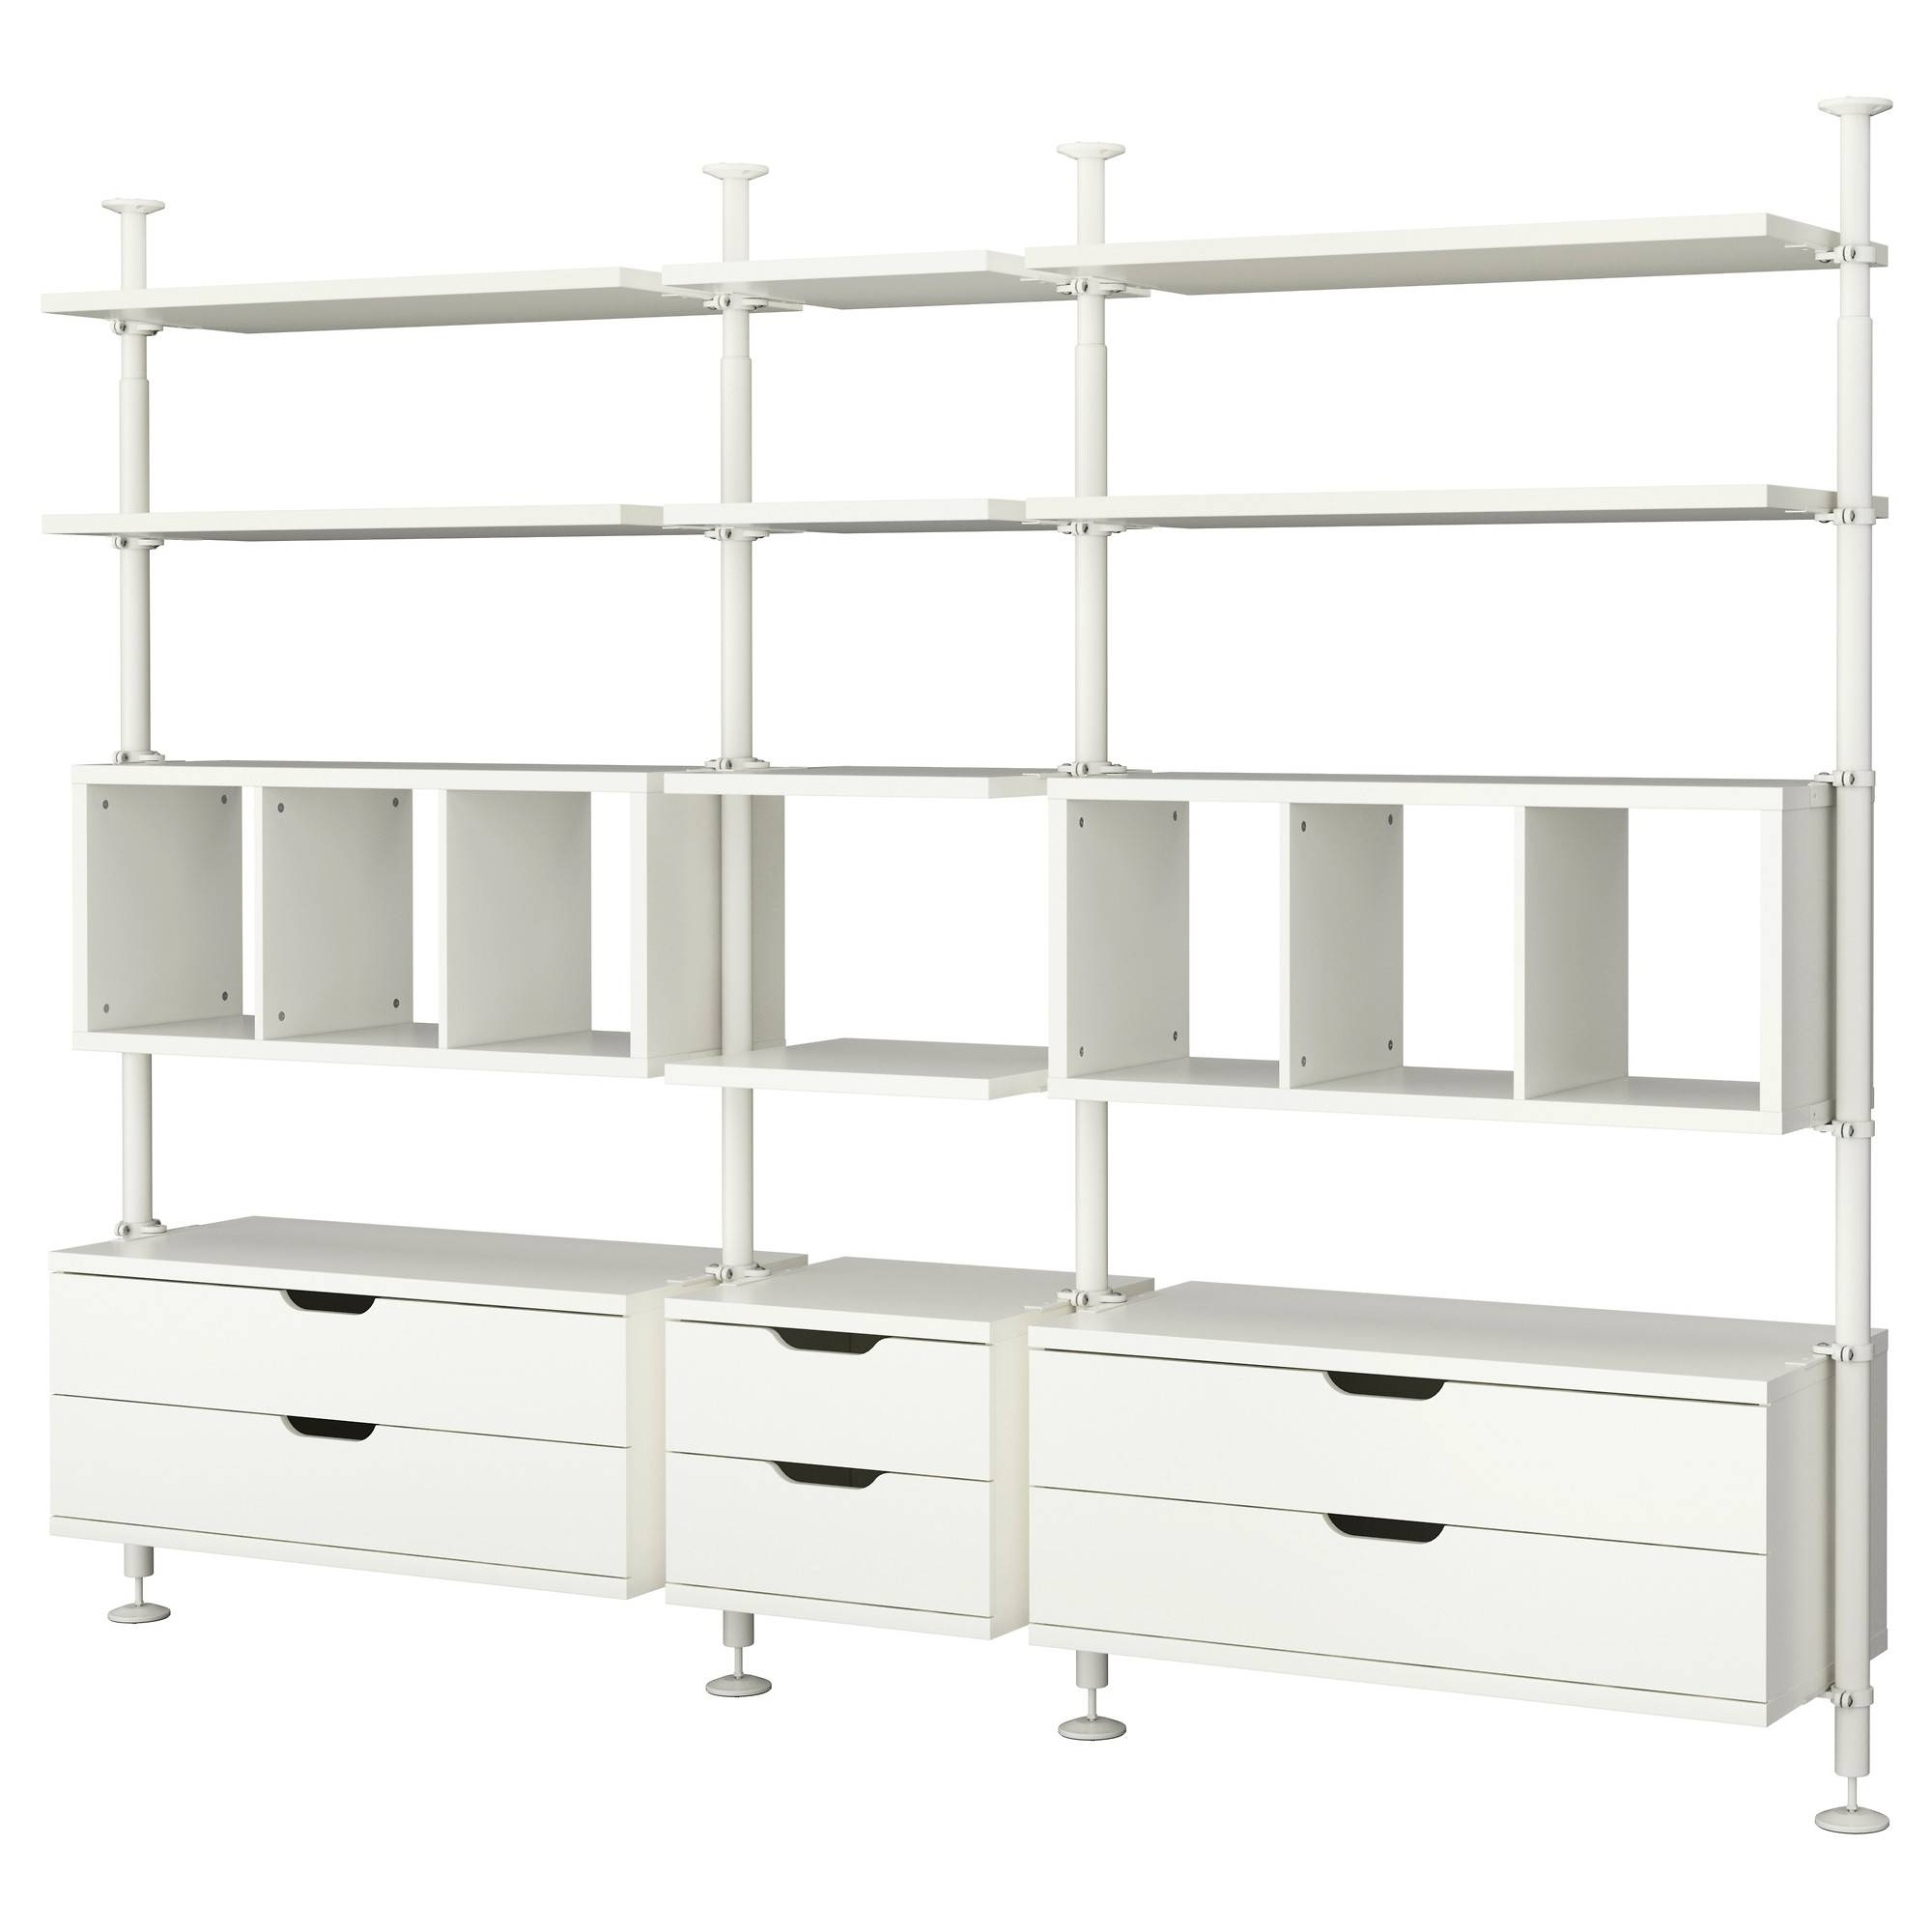 Bedroom Design: Wonderful Closet Organizers Ikea In White Made Of intended for Wardrobe Drawers And Shelves Ikea (Image 3 of 30)